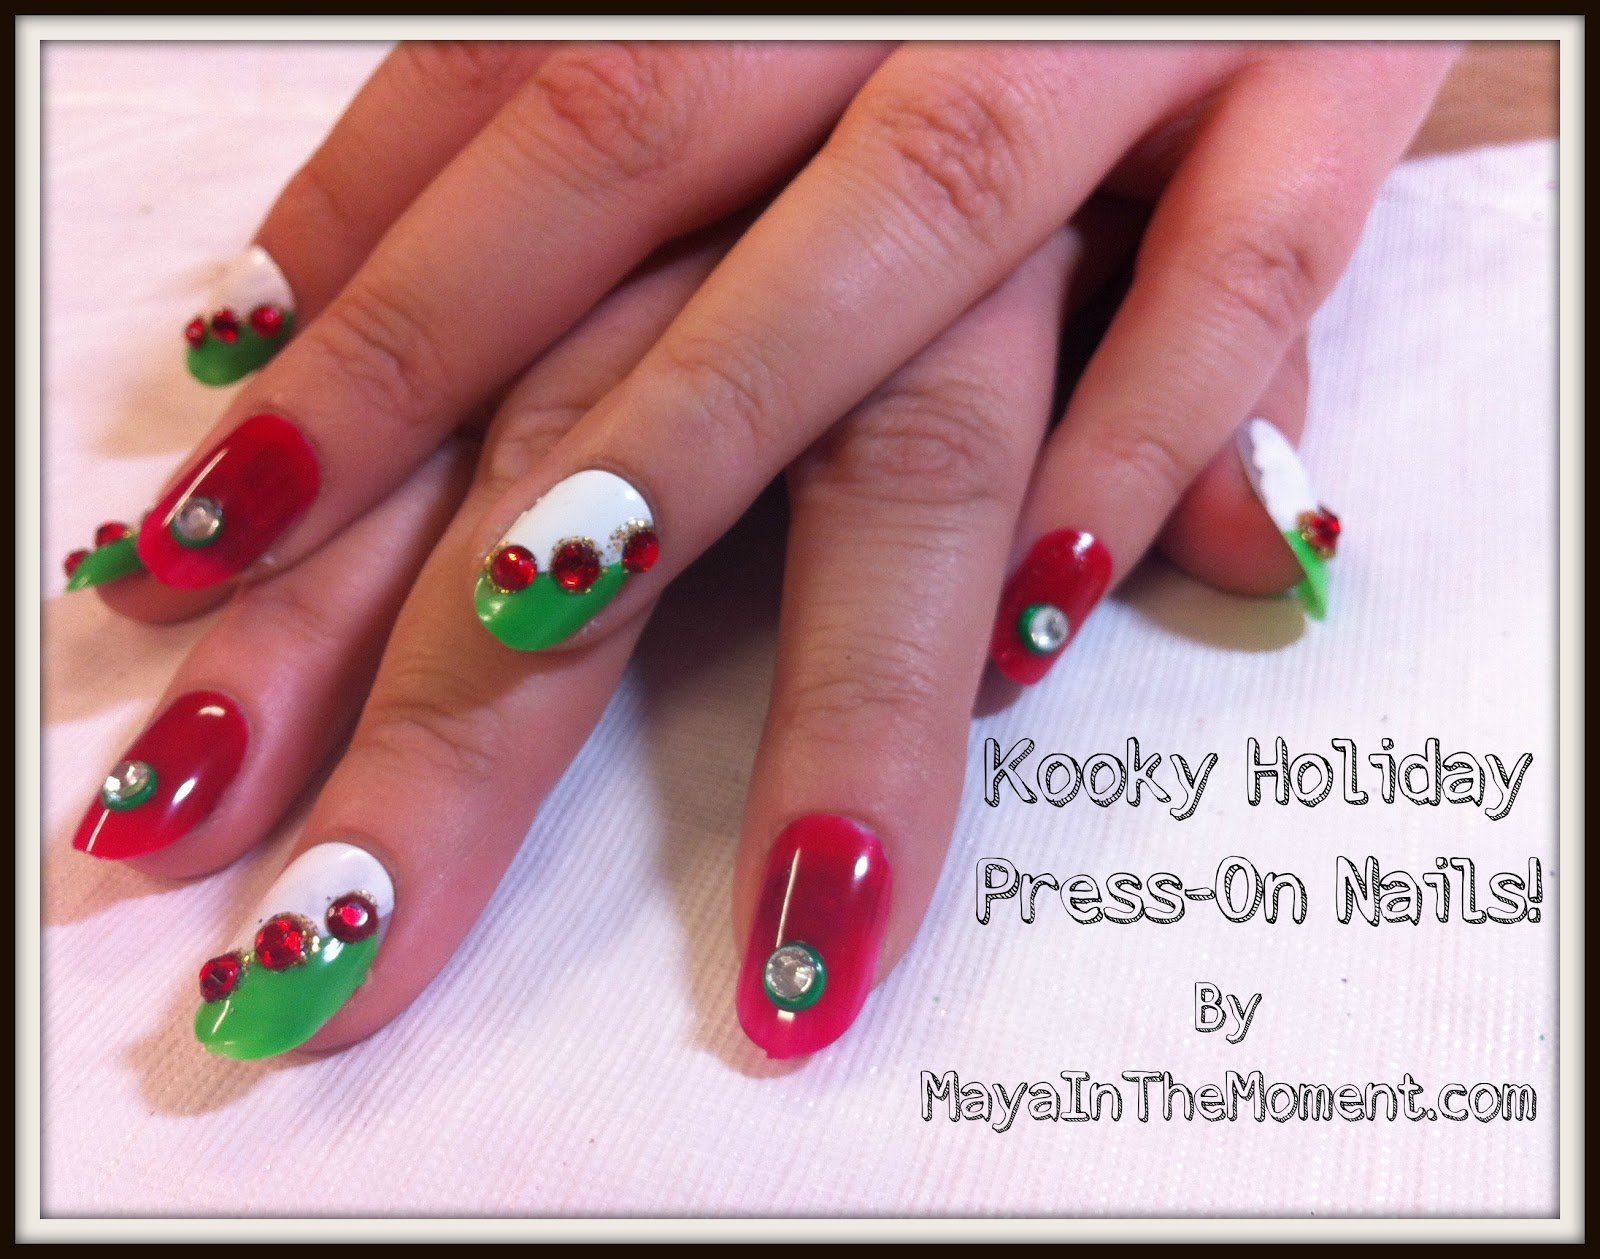 iLoveToCreate Blog: MAYA IN THE MOMENT: Holiday Press-On Nails!